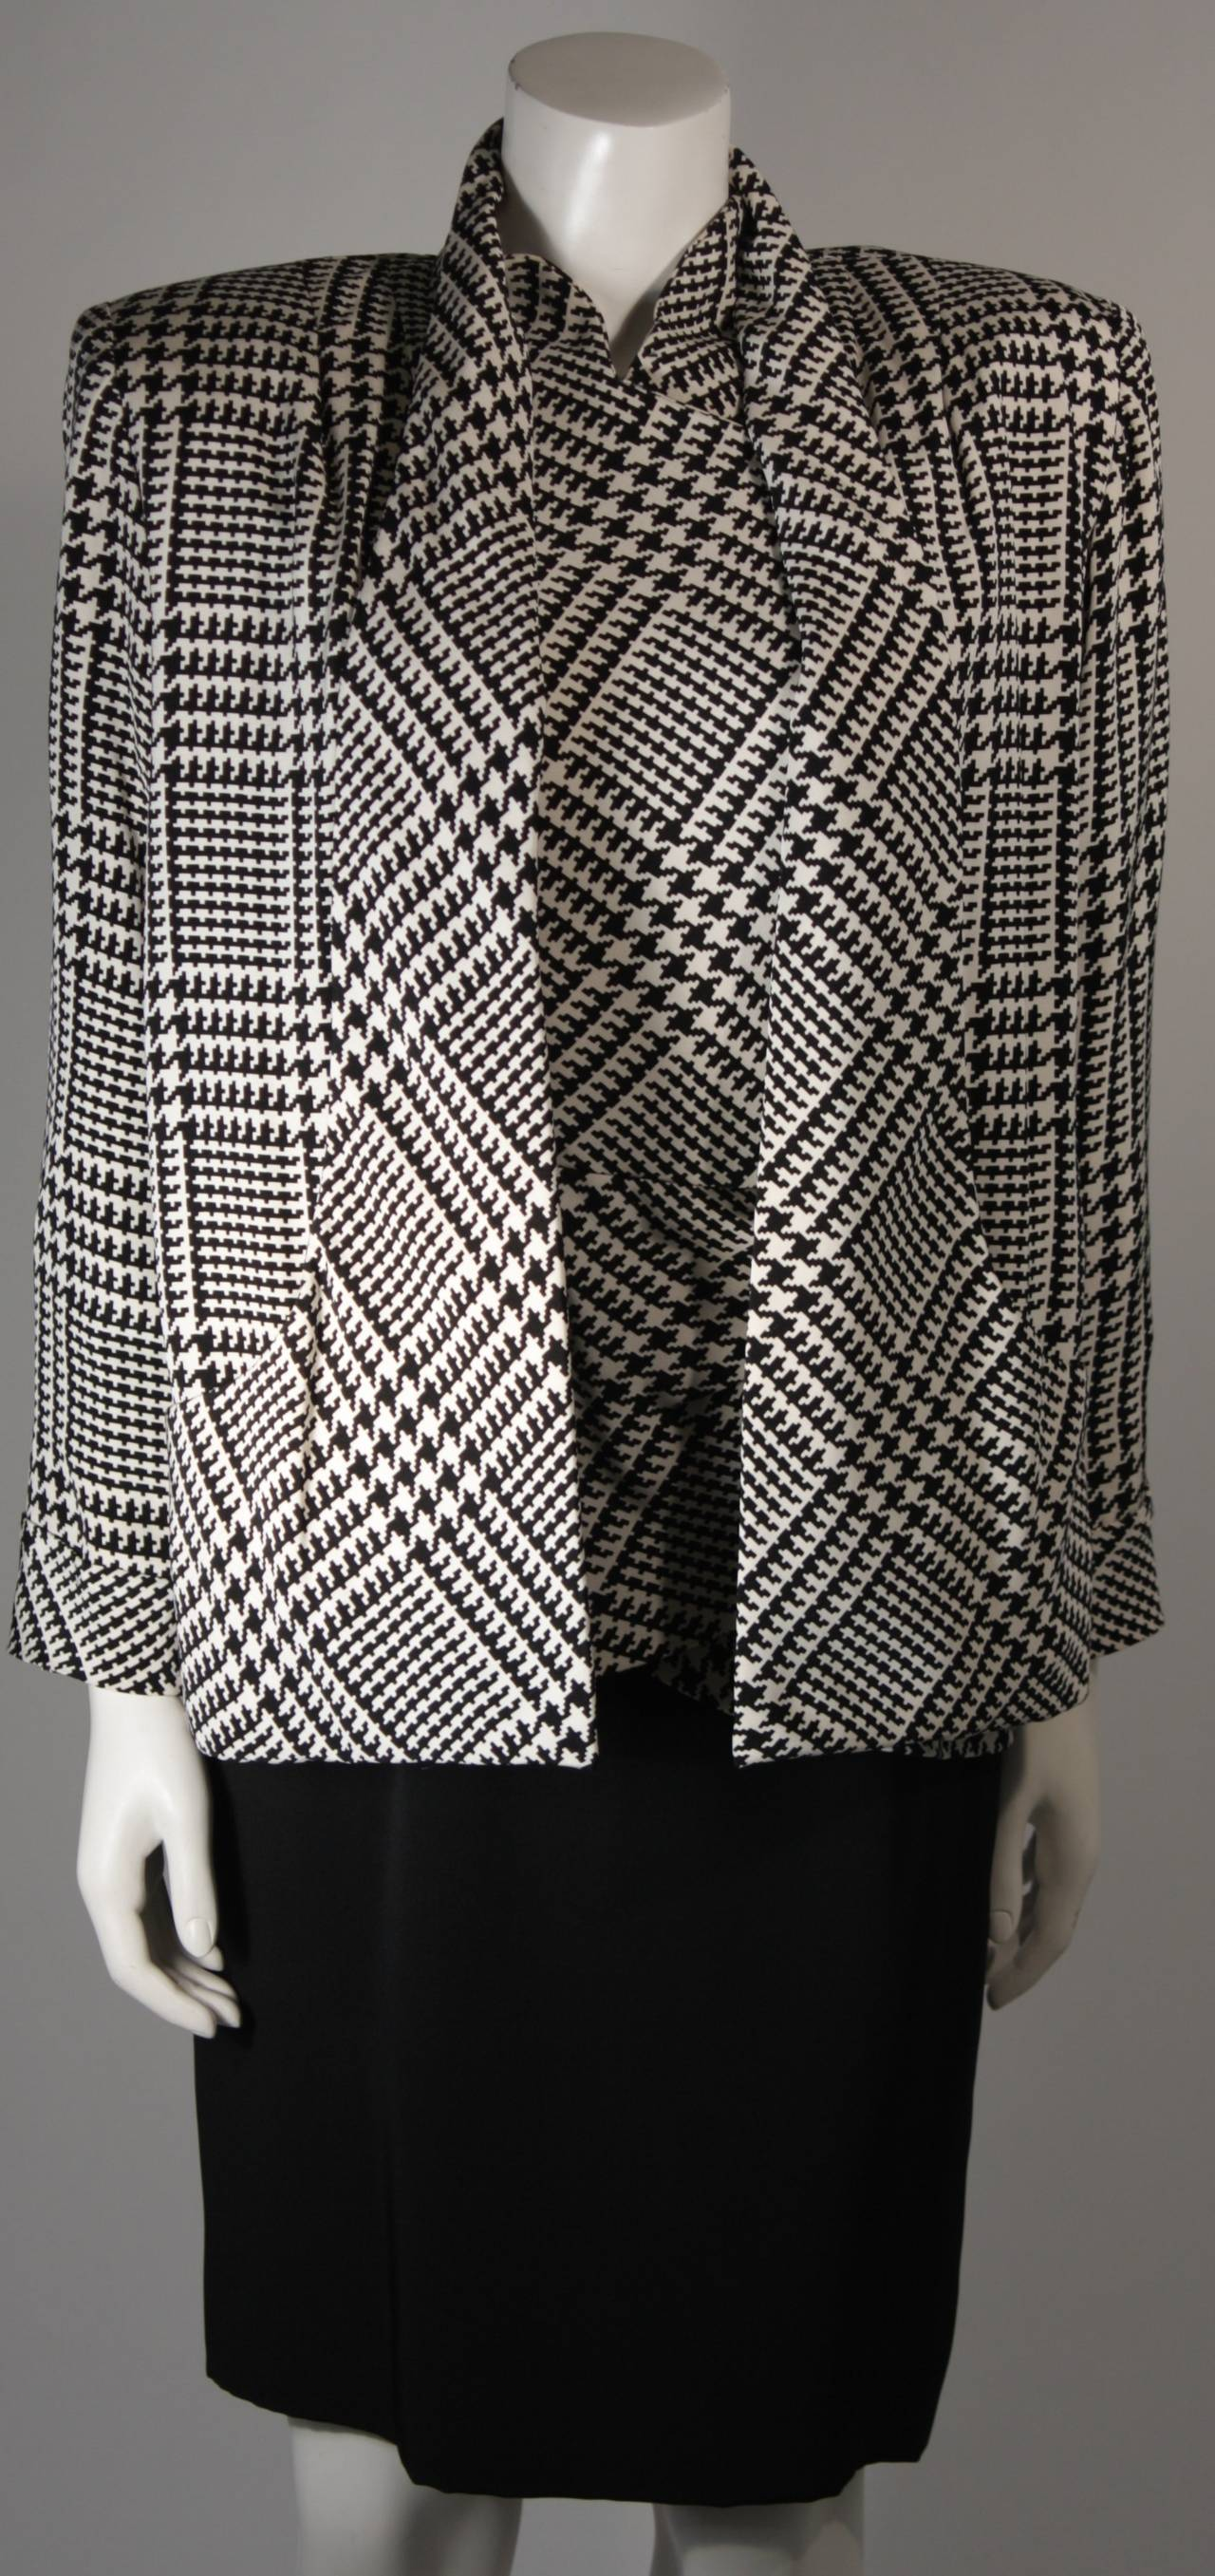 Get the best deals on black and black and white houndstooth dress and save up to 70% off at Poshmark now! Whatever you're shopping for, we've got it.